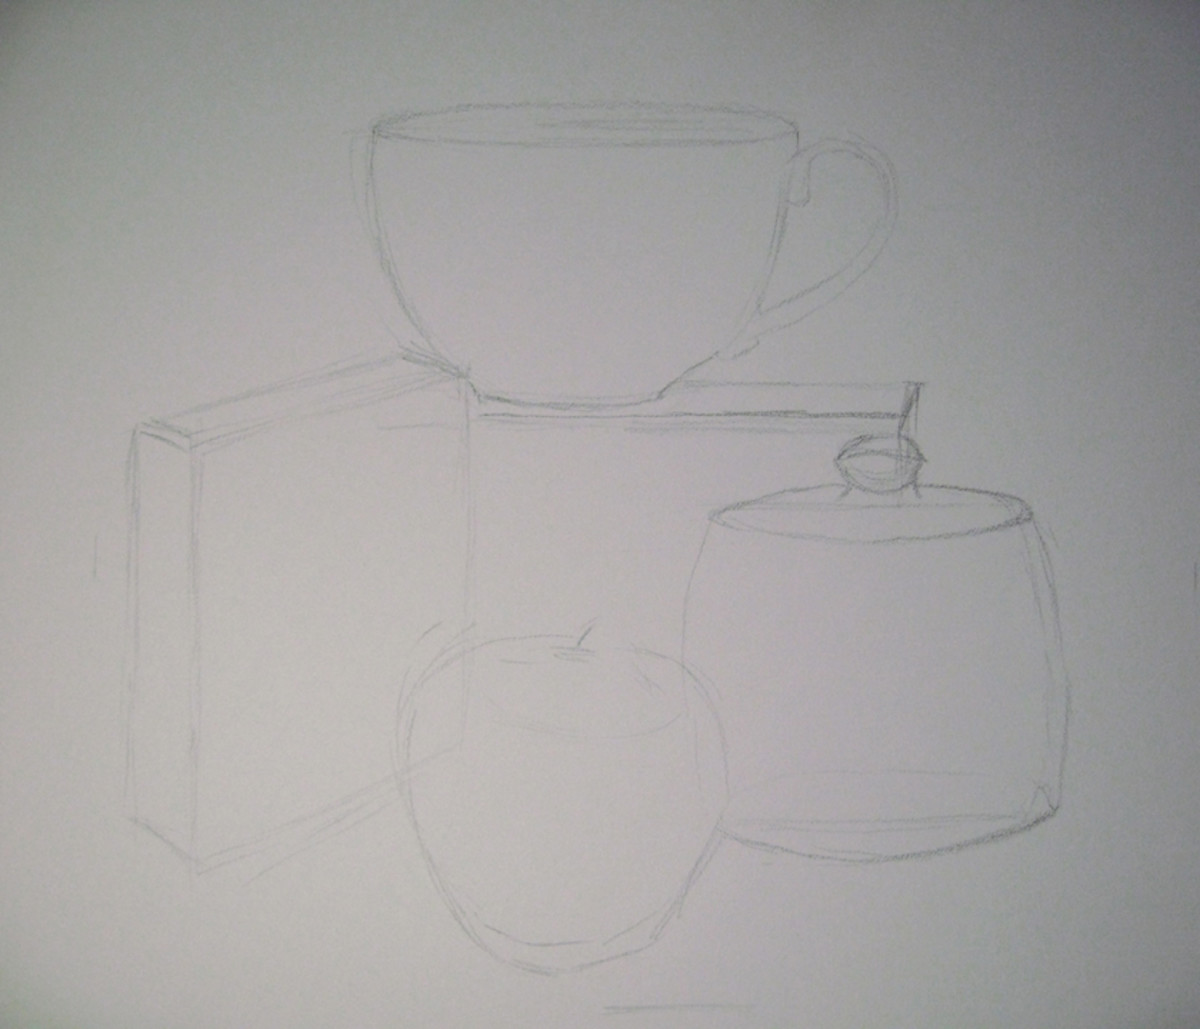 Still Life. Begin adding more shapes to create the illusion of roundness.